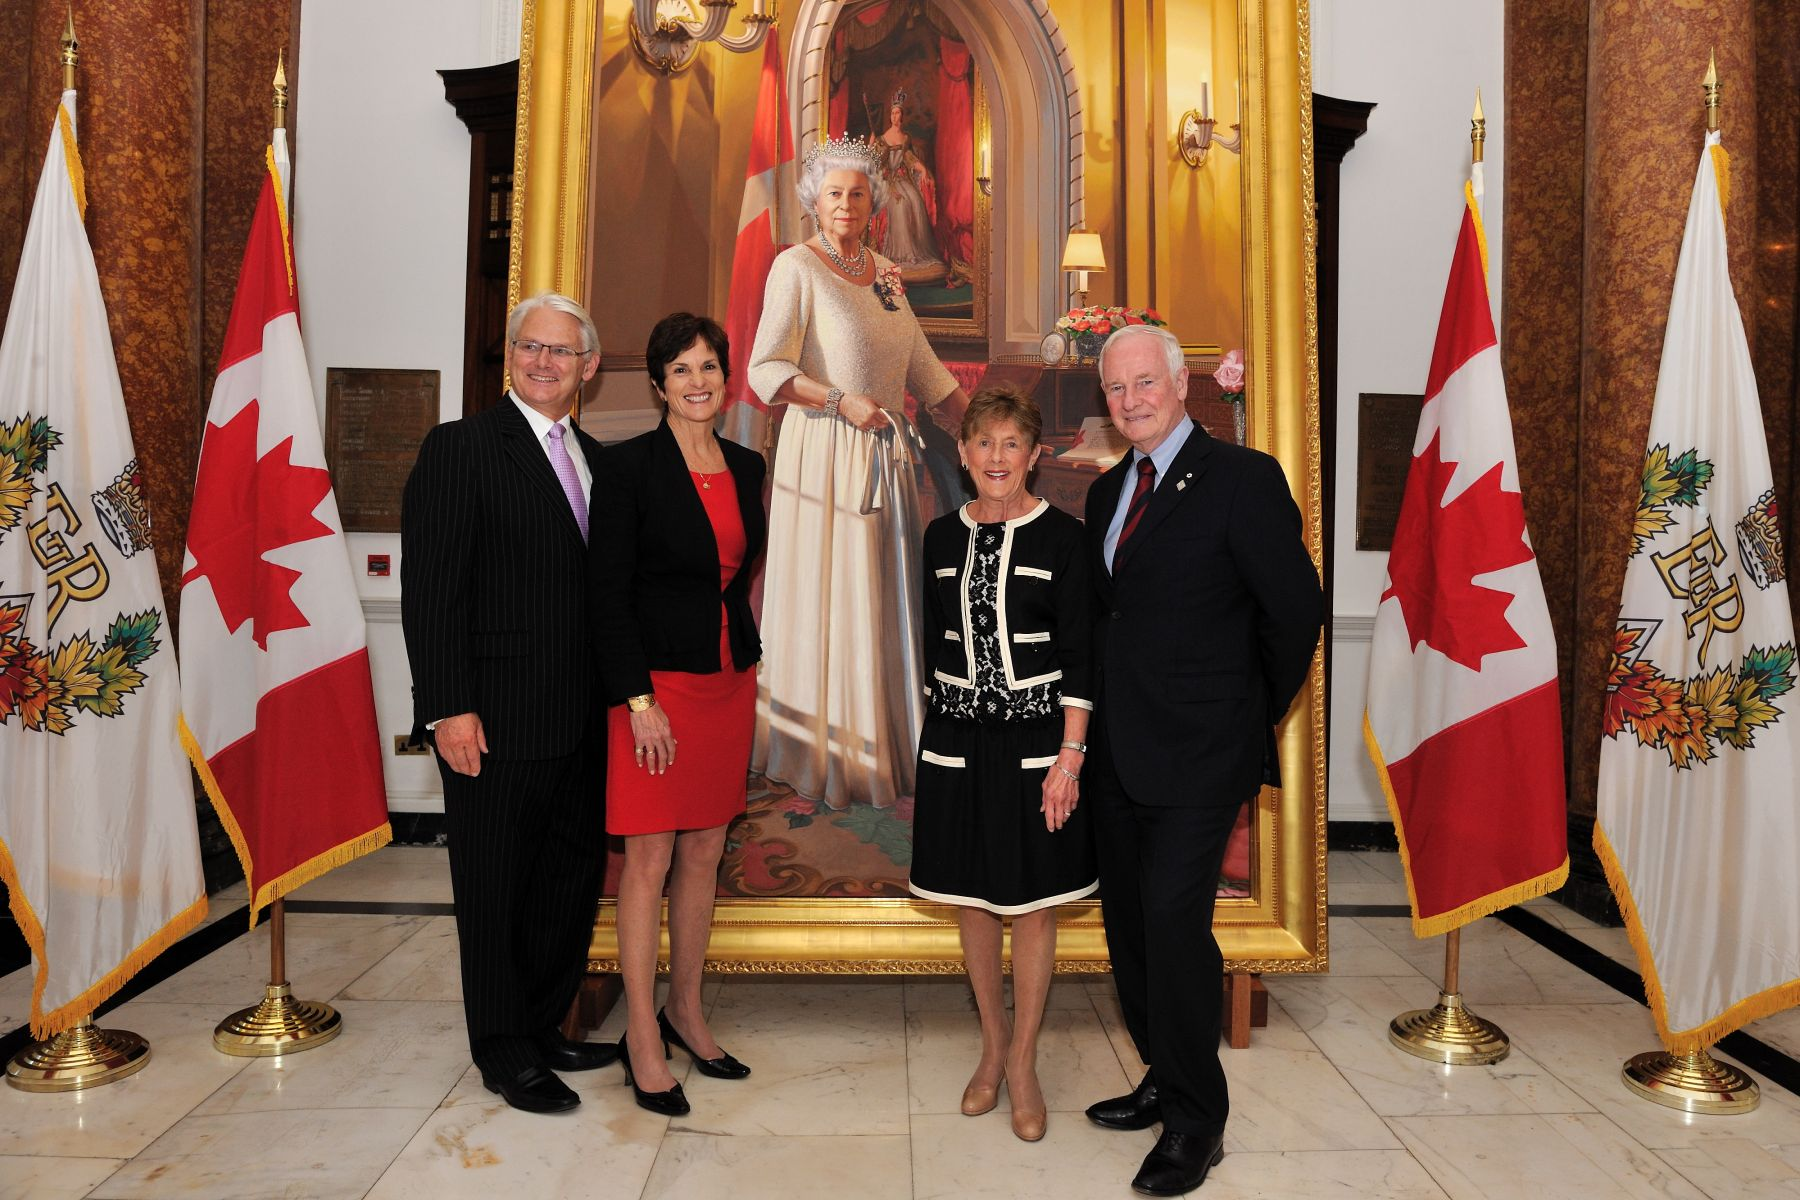 Their Excellencies attended a reception at Canada House with Mr. Gordon Campbell, High Commissioner of Canada to the United Kingdom of Great Britain and Northern Ireland.